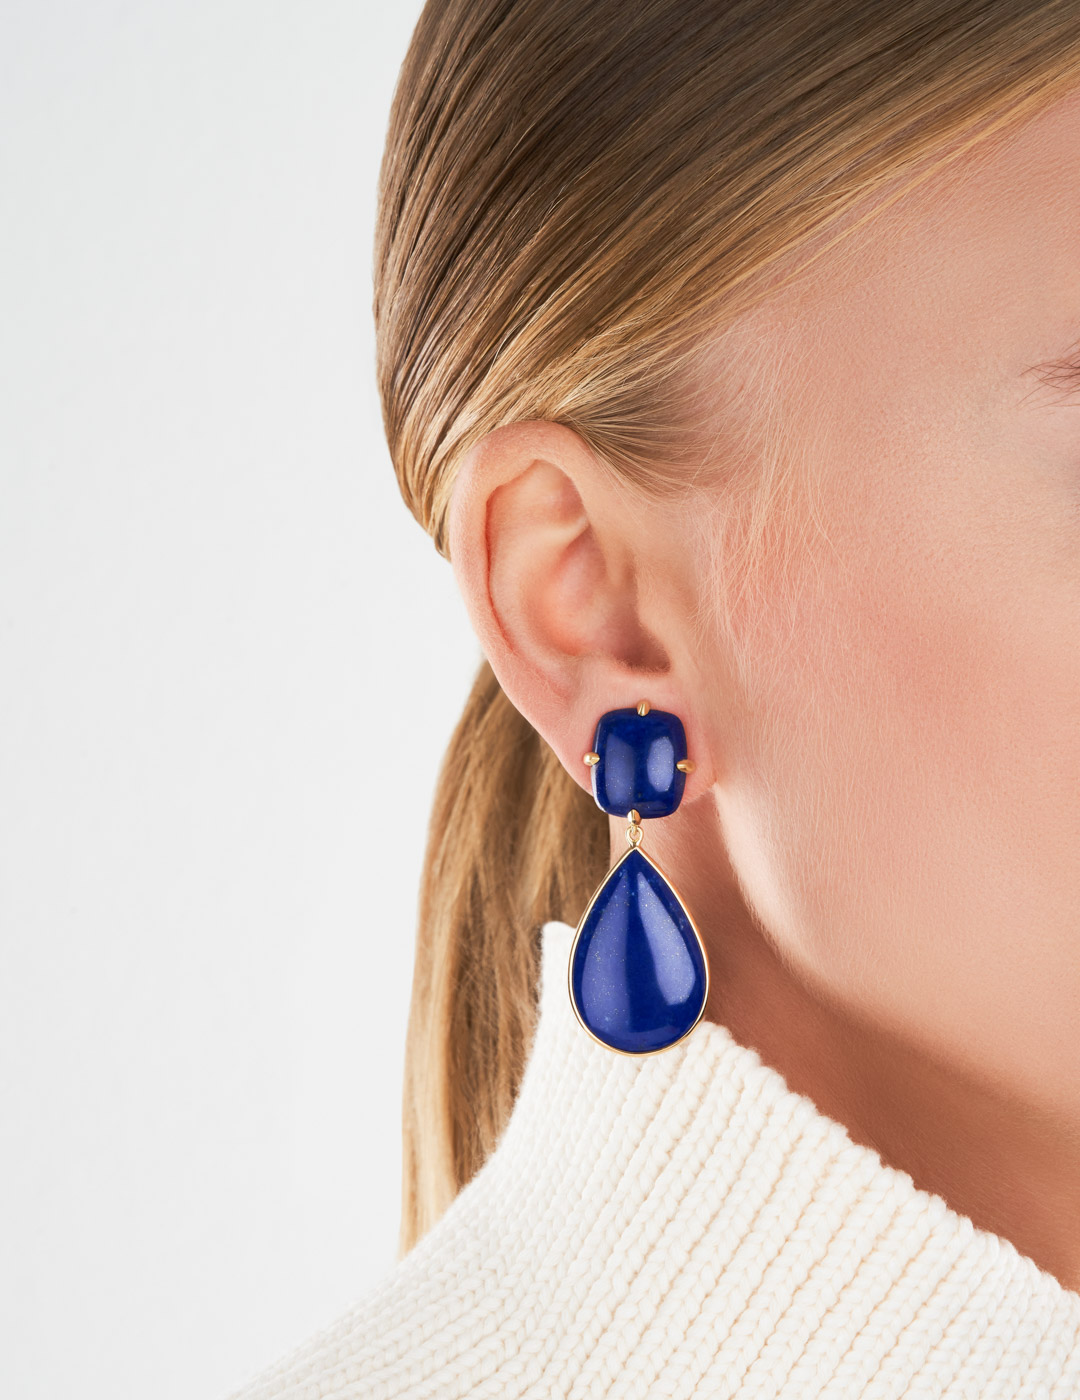 mish_products_earrings_Roadster-Lapis-ER-2